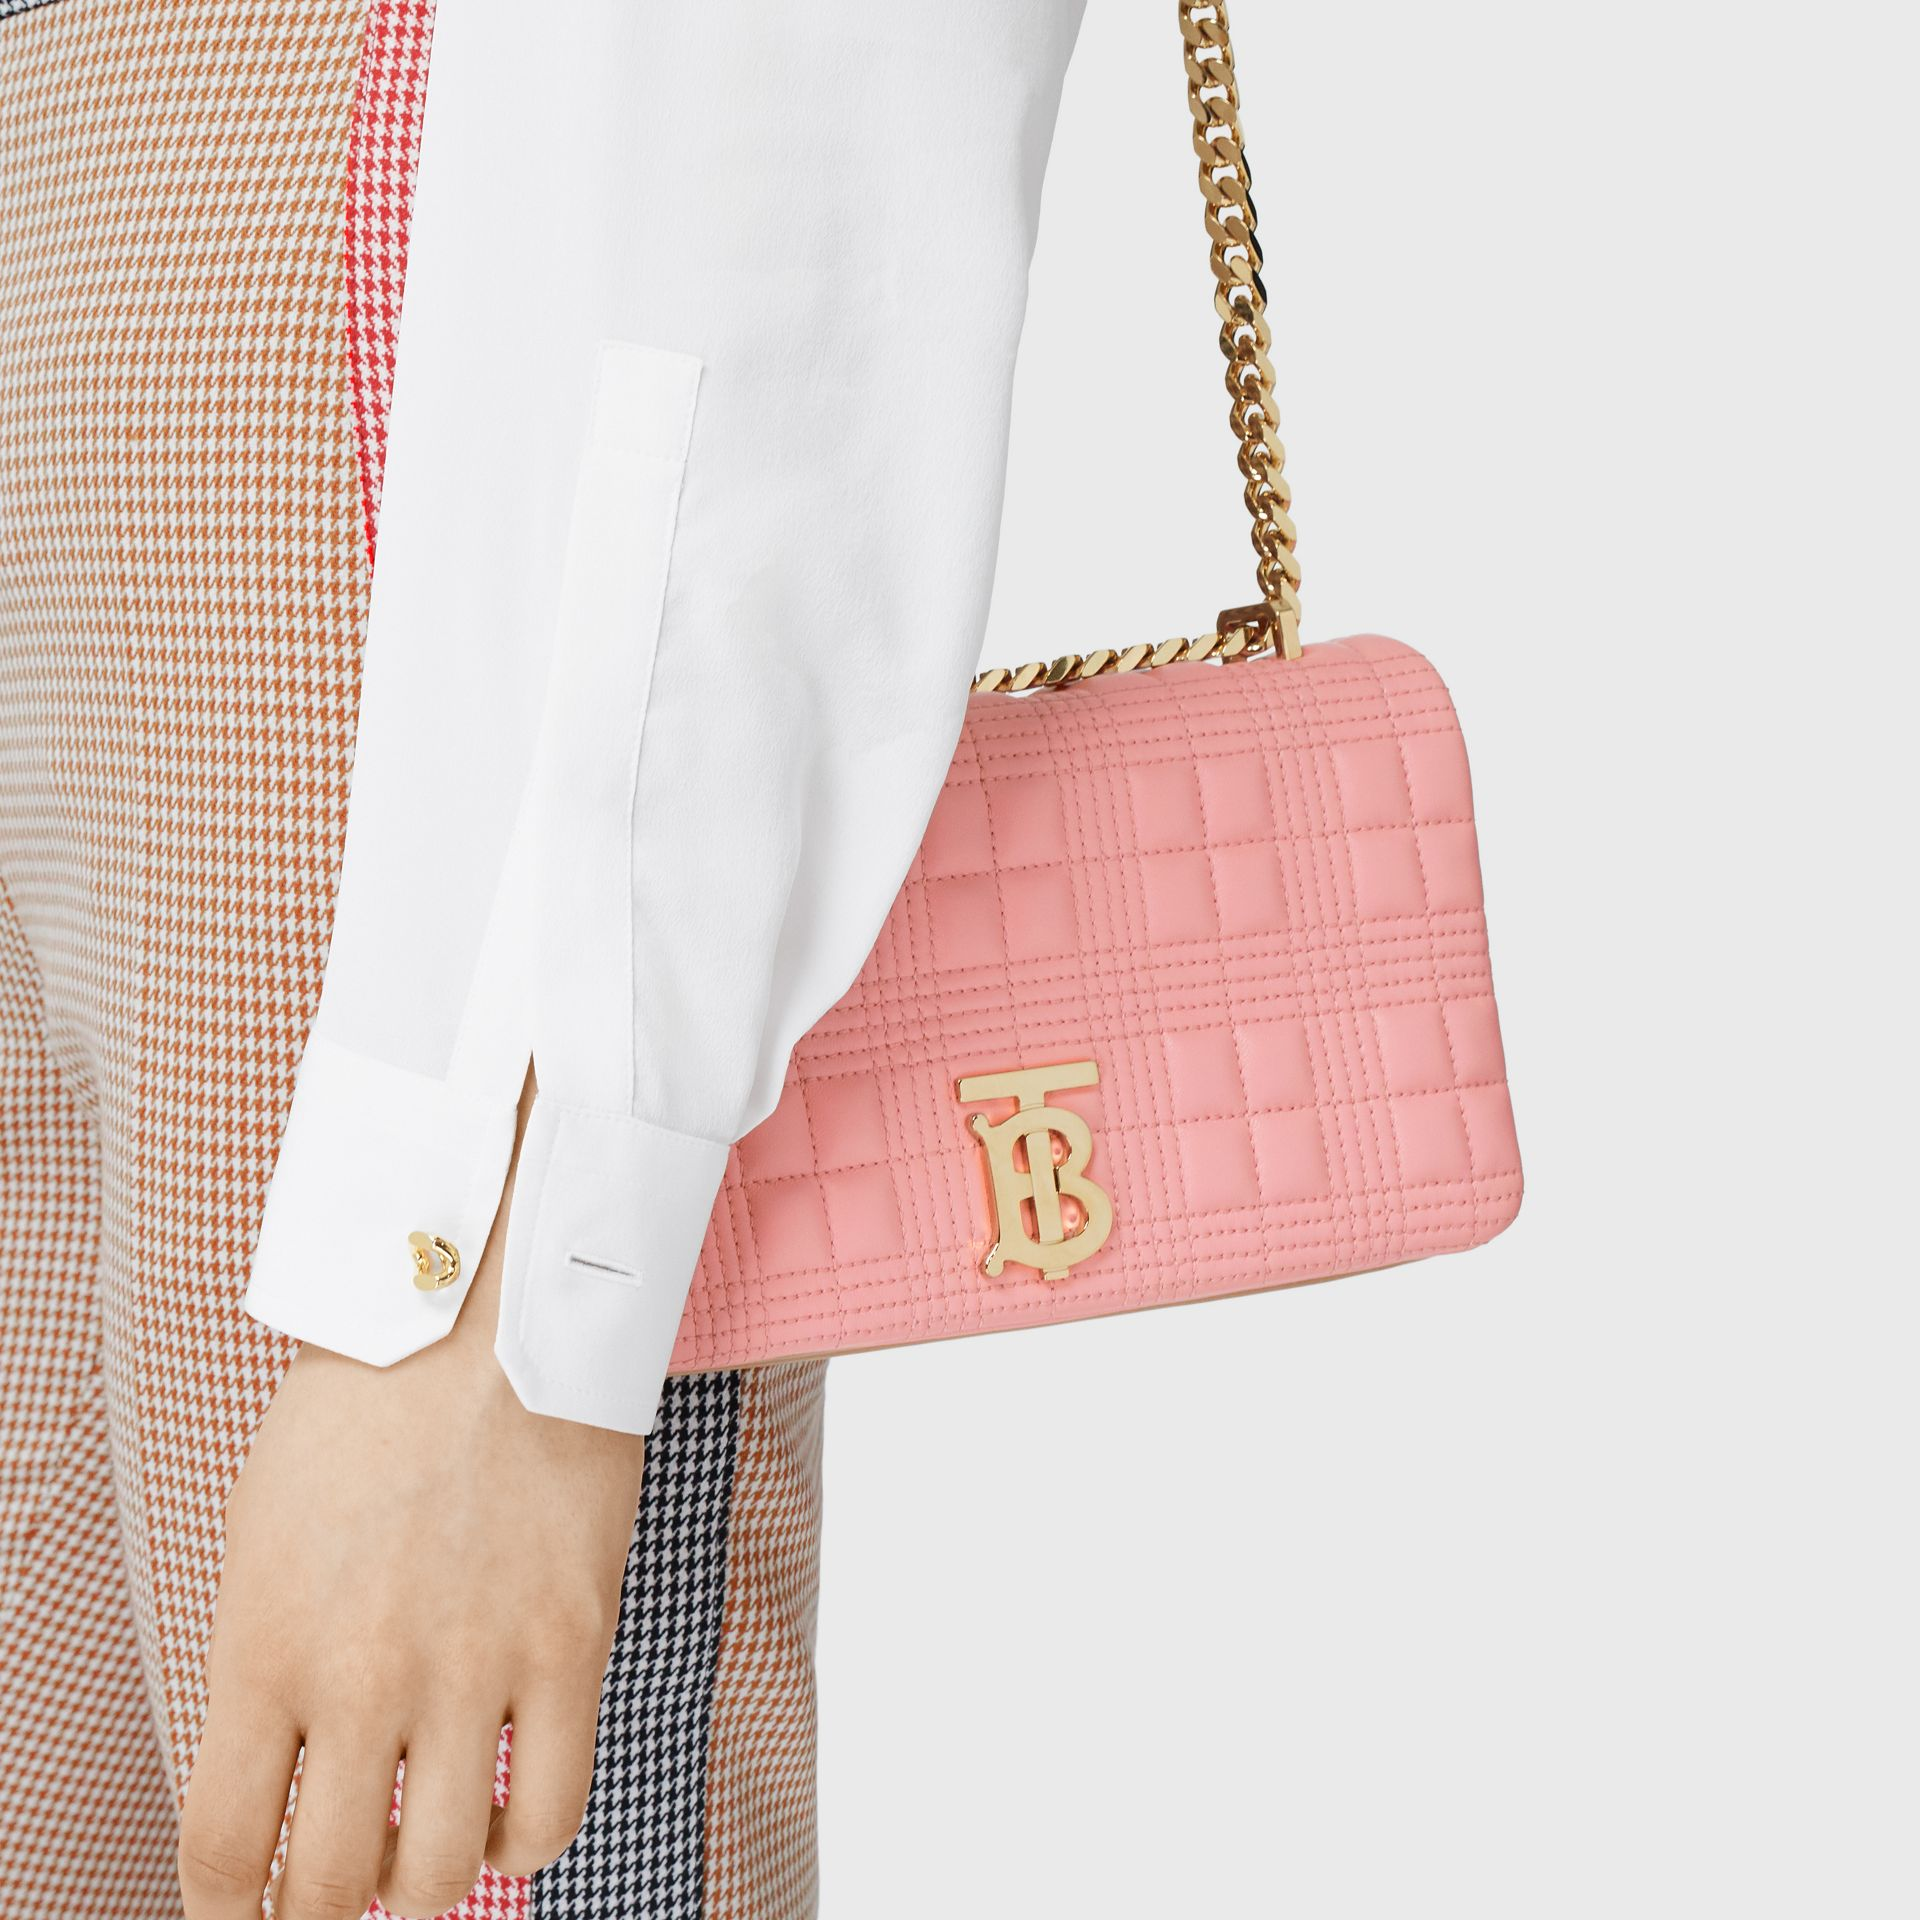 Small Quilted Two-tone Lambskin Lola Bag in Peony/camel - Women | Burberry - gallery image 2